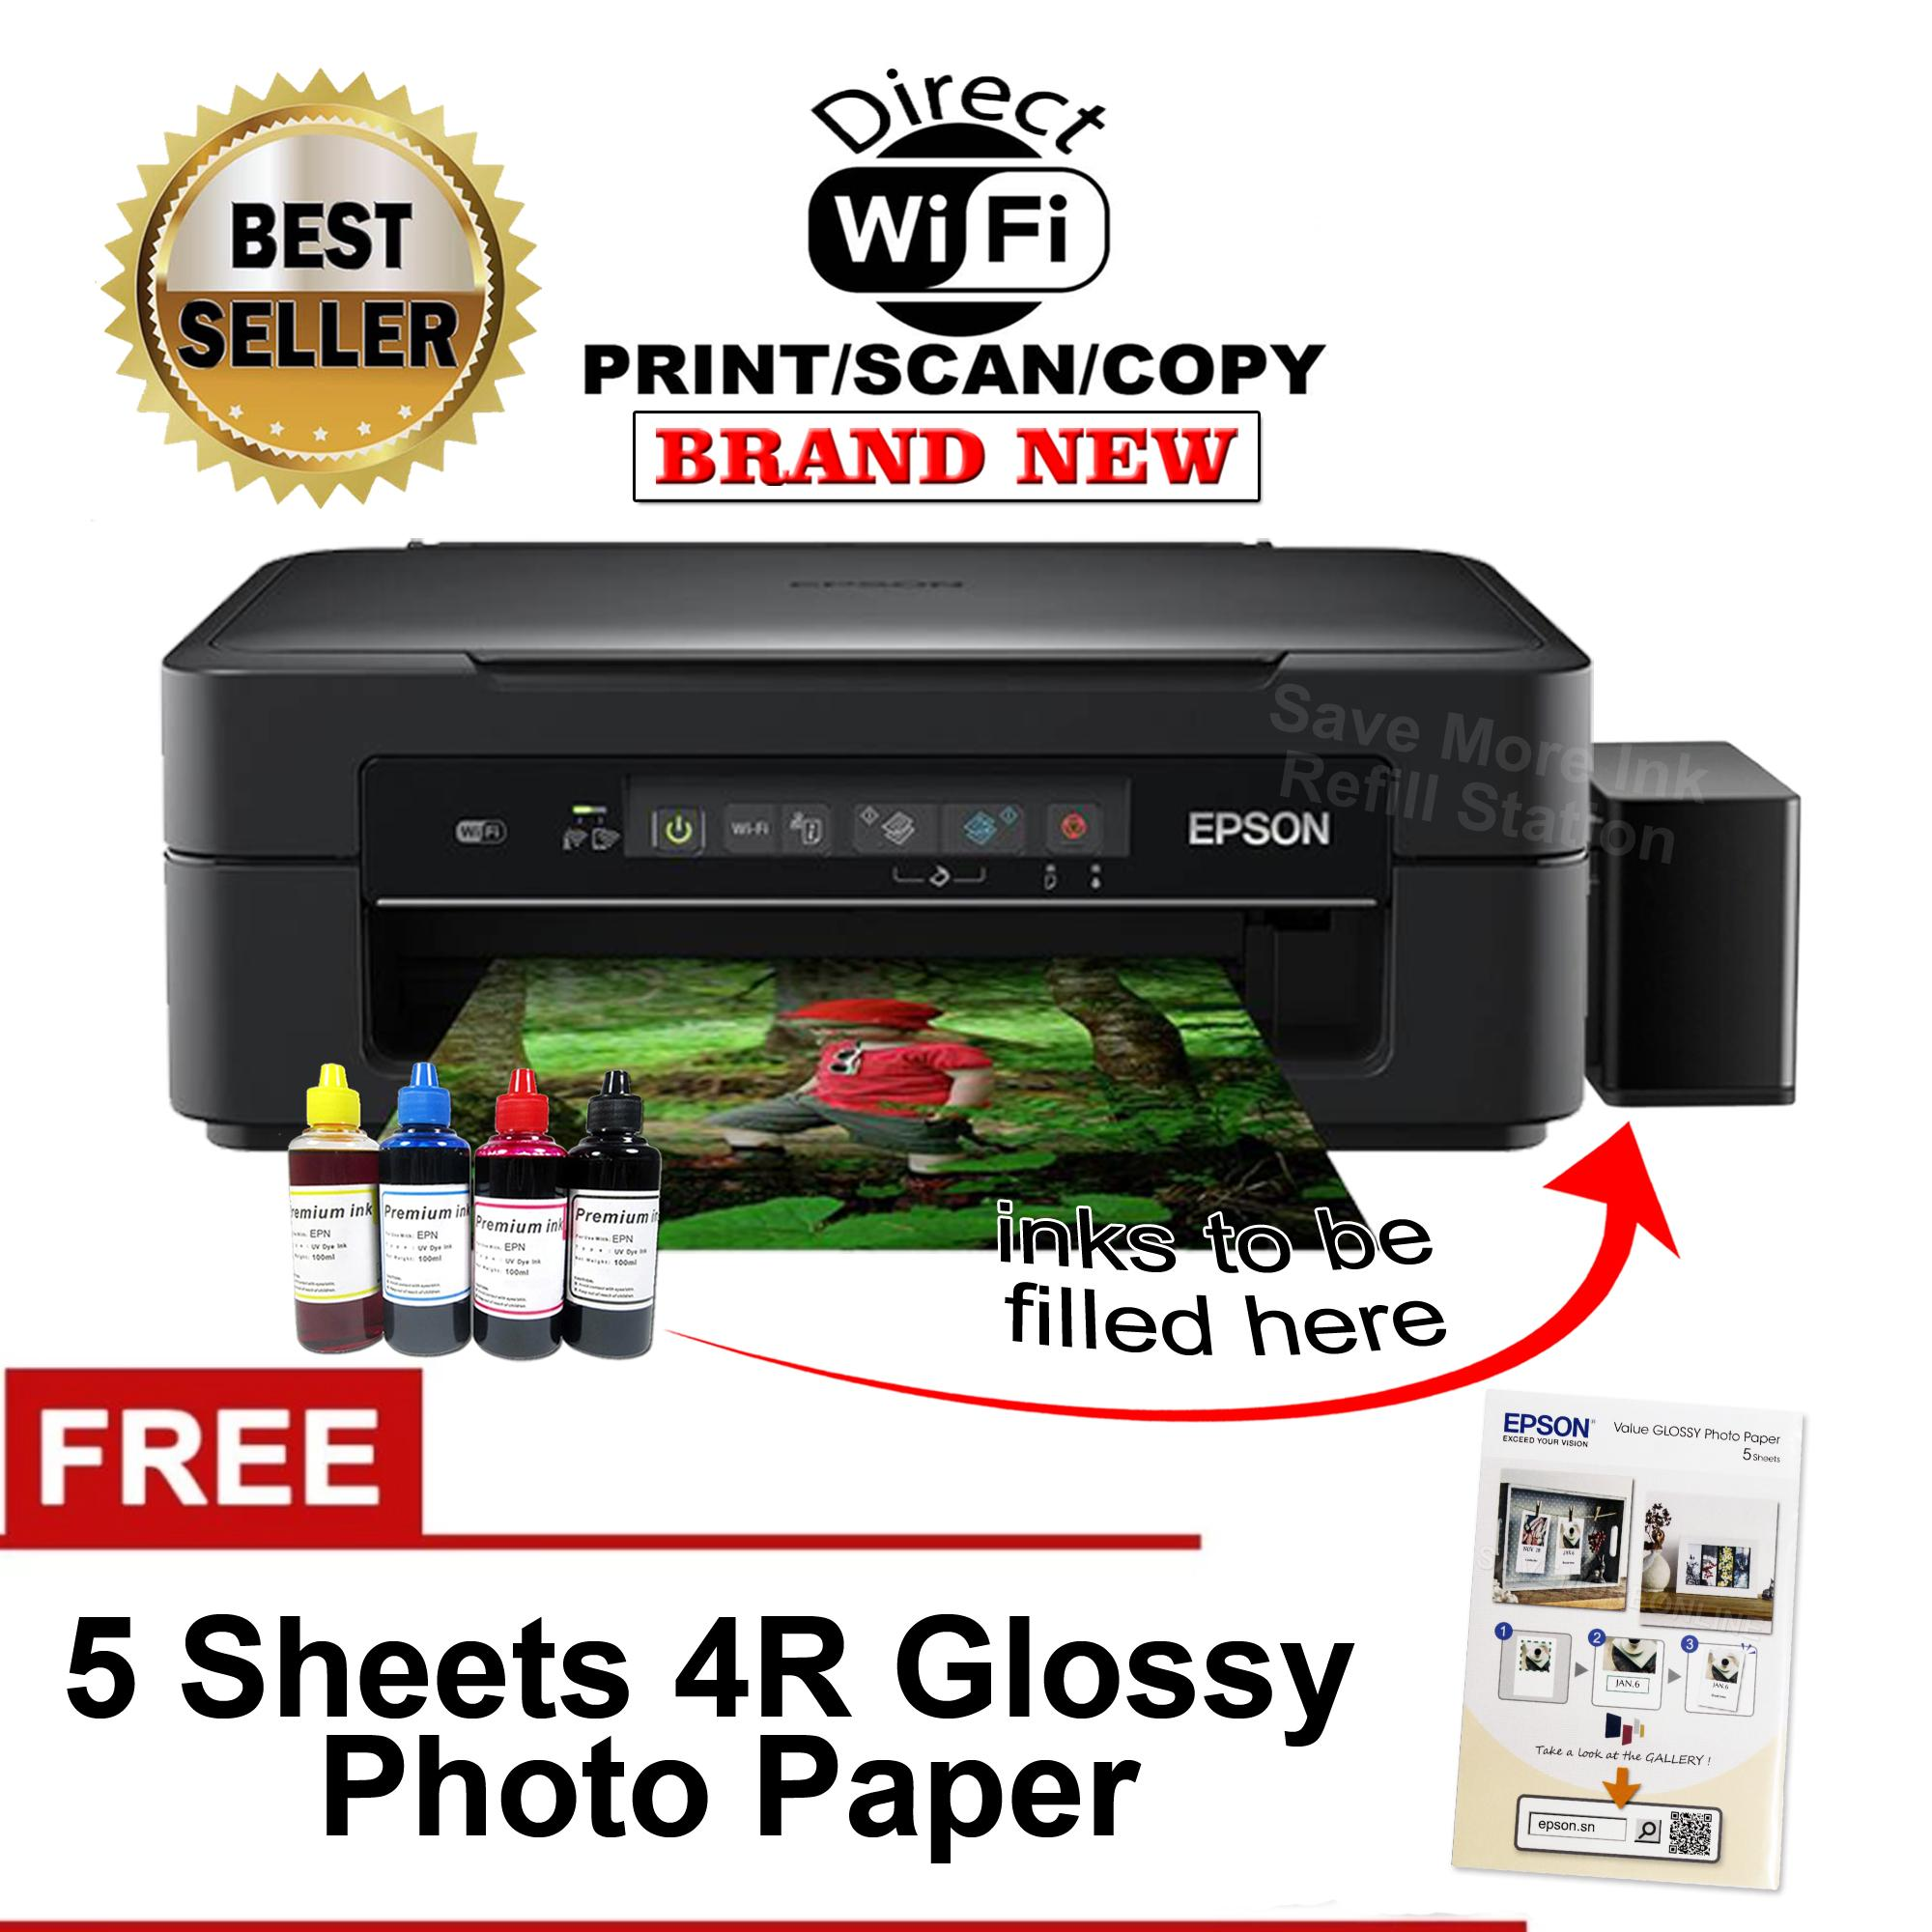 Epson XP-255 Wi-Fi & Wi-Fi Direct w/ CiSS & Dye ink